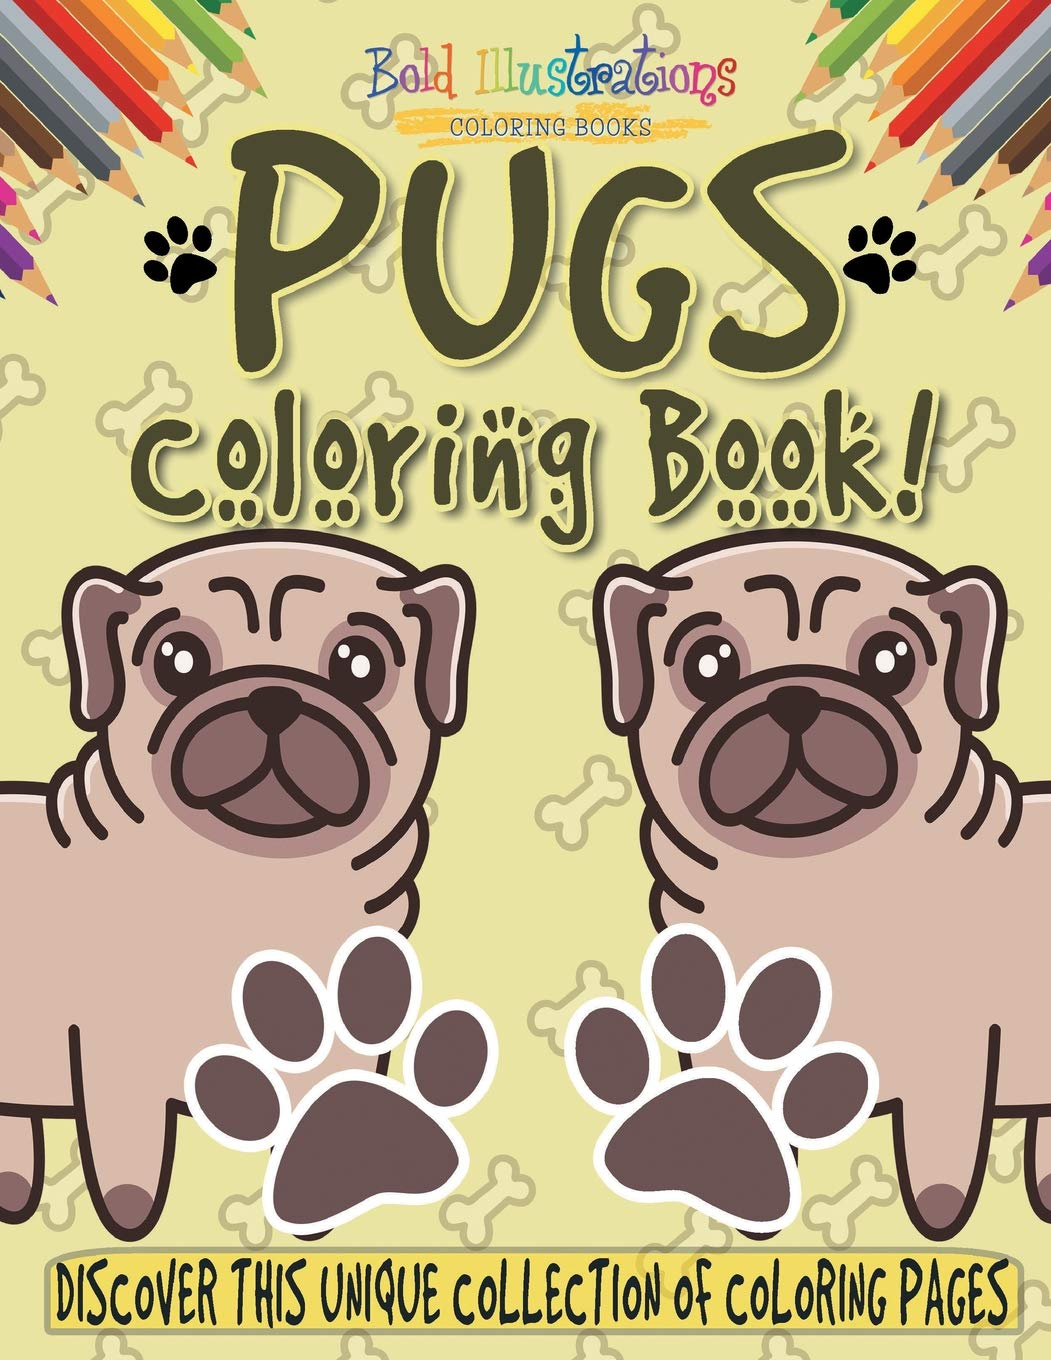 Pugs Coloring Book! Discover This Unique Collection Of Coloring